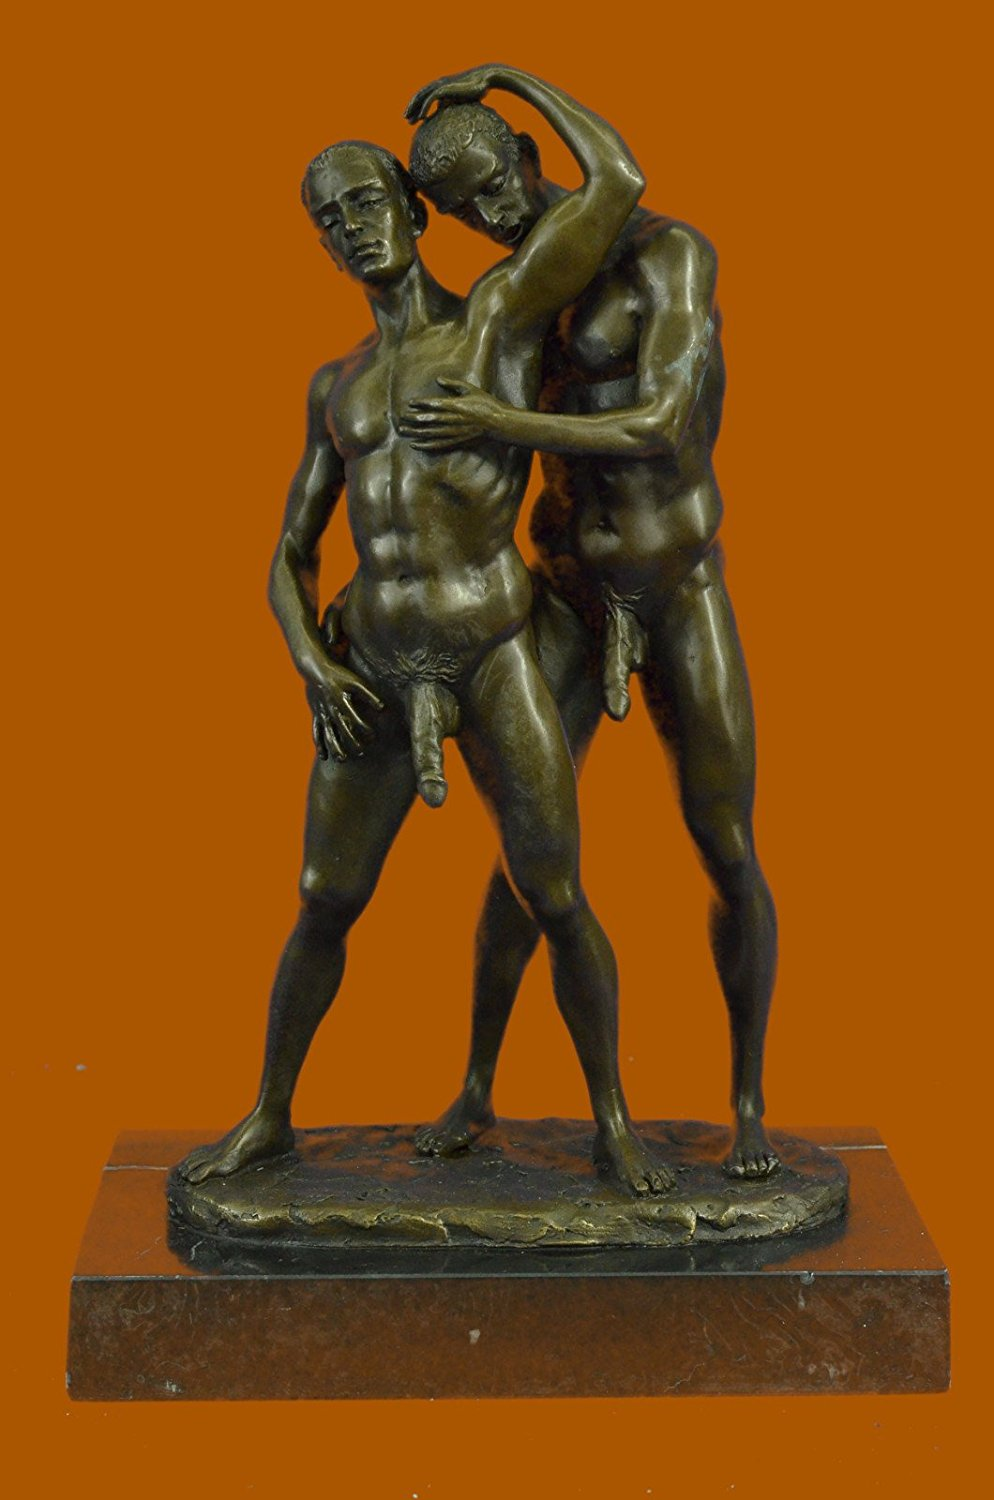 Erotic gay figurines